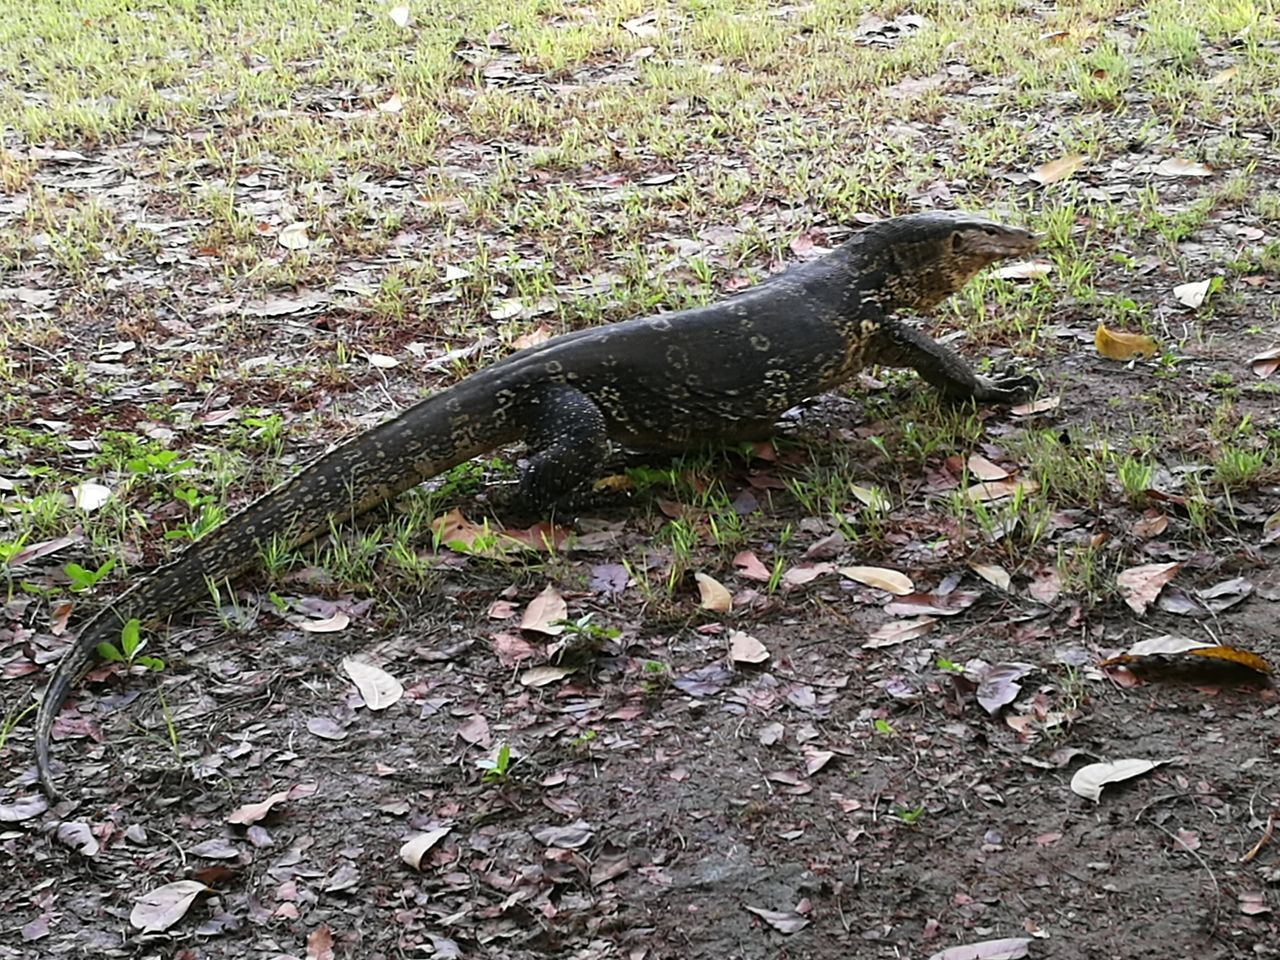 Animal Themes One Animal Animals In The Wild High Angle View Day Reptile No People Outdoors Animal Wildlife Nature Grass Close-up Iguana Love To Take Photos ❤